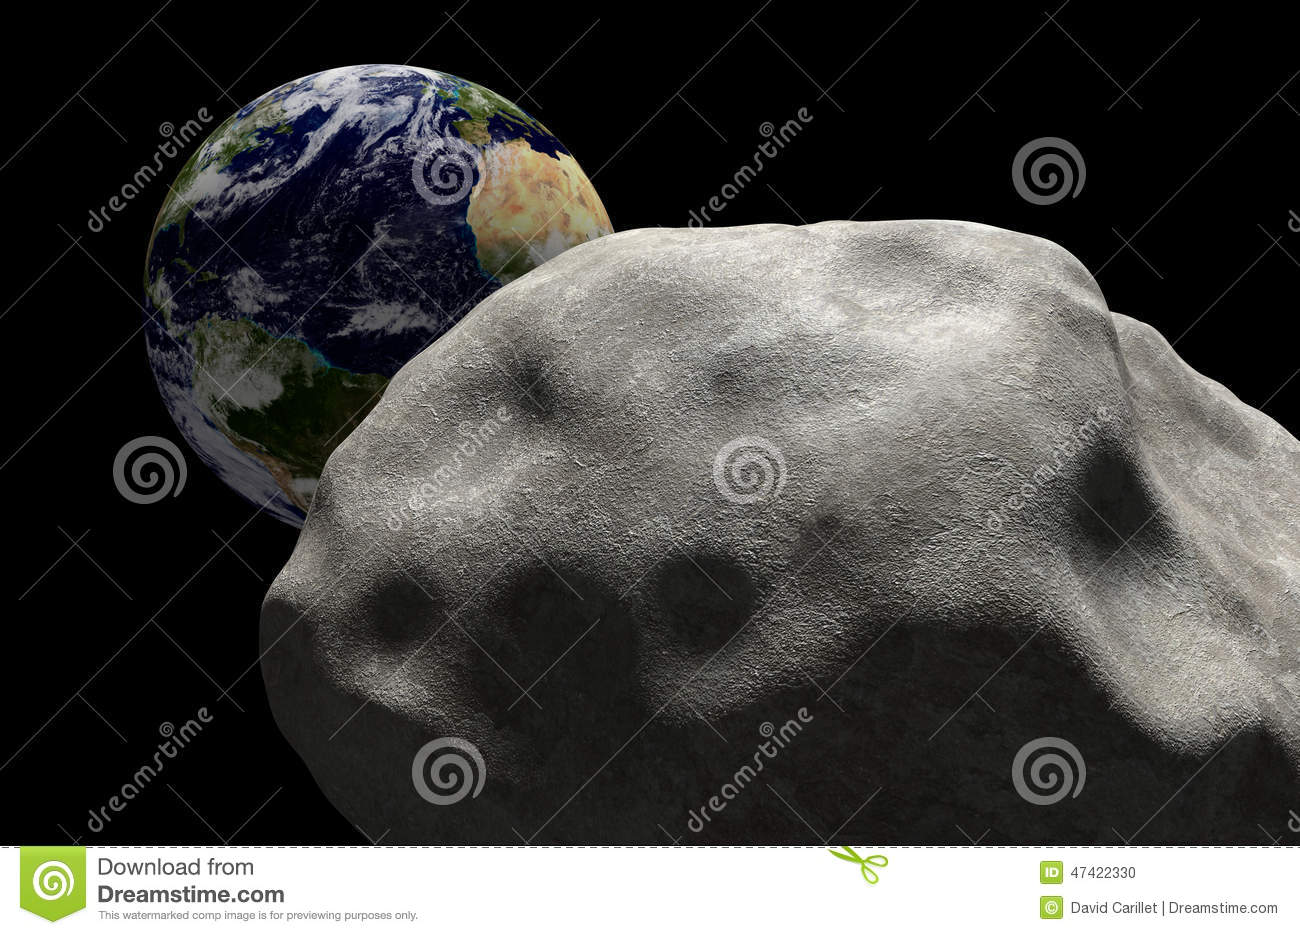 impacts from space and mass extinction Could asteroids bombard the earth to cause a mass through a vacuum outer space real science proves earth is intercept an extinction level impact.